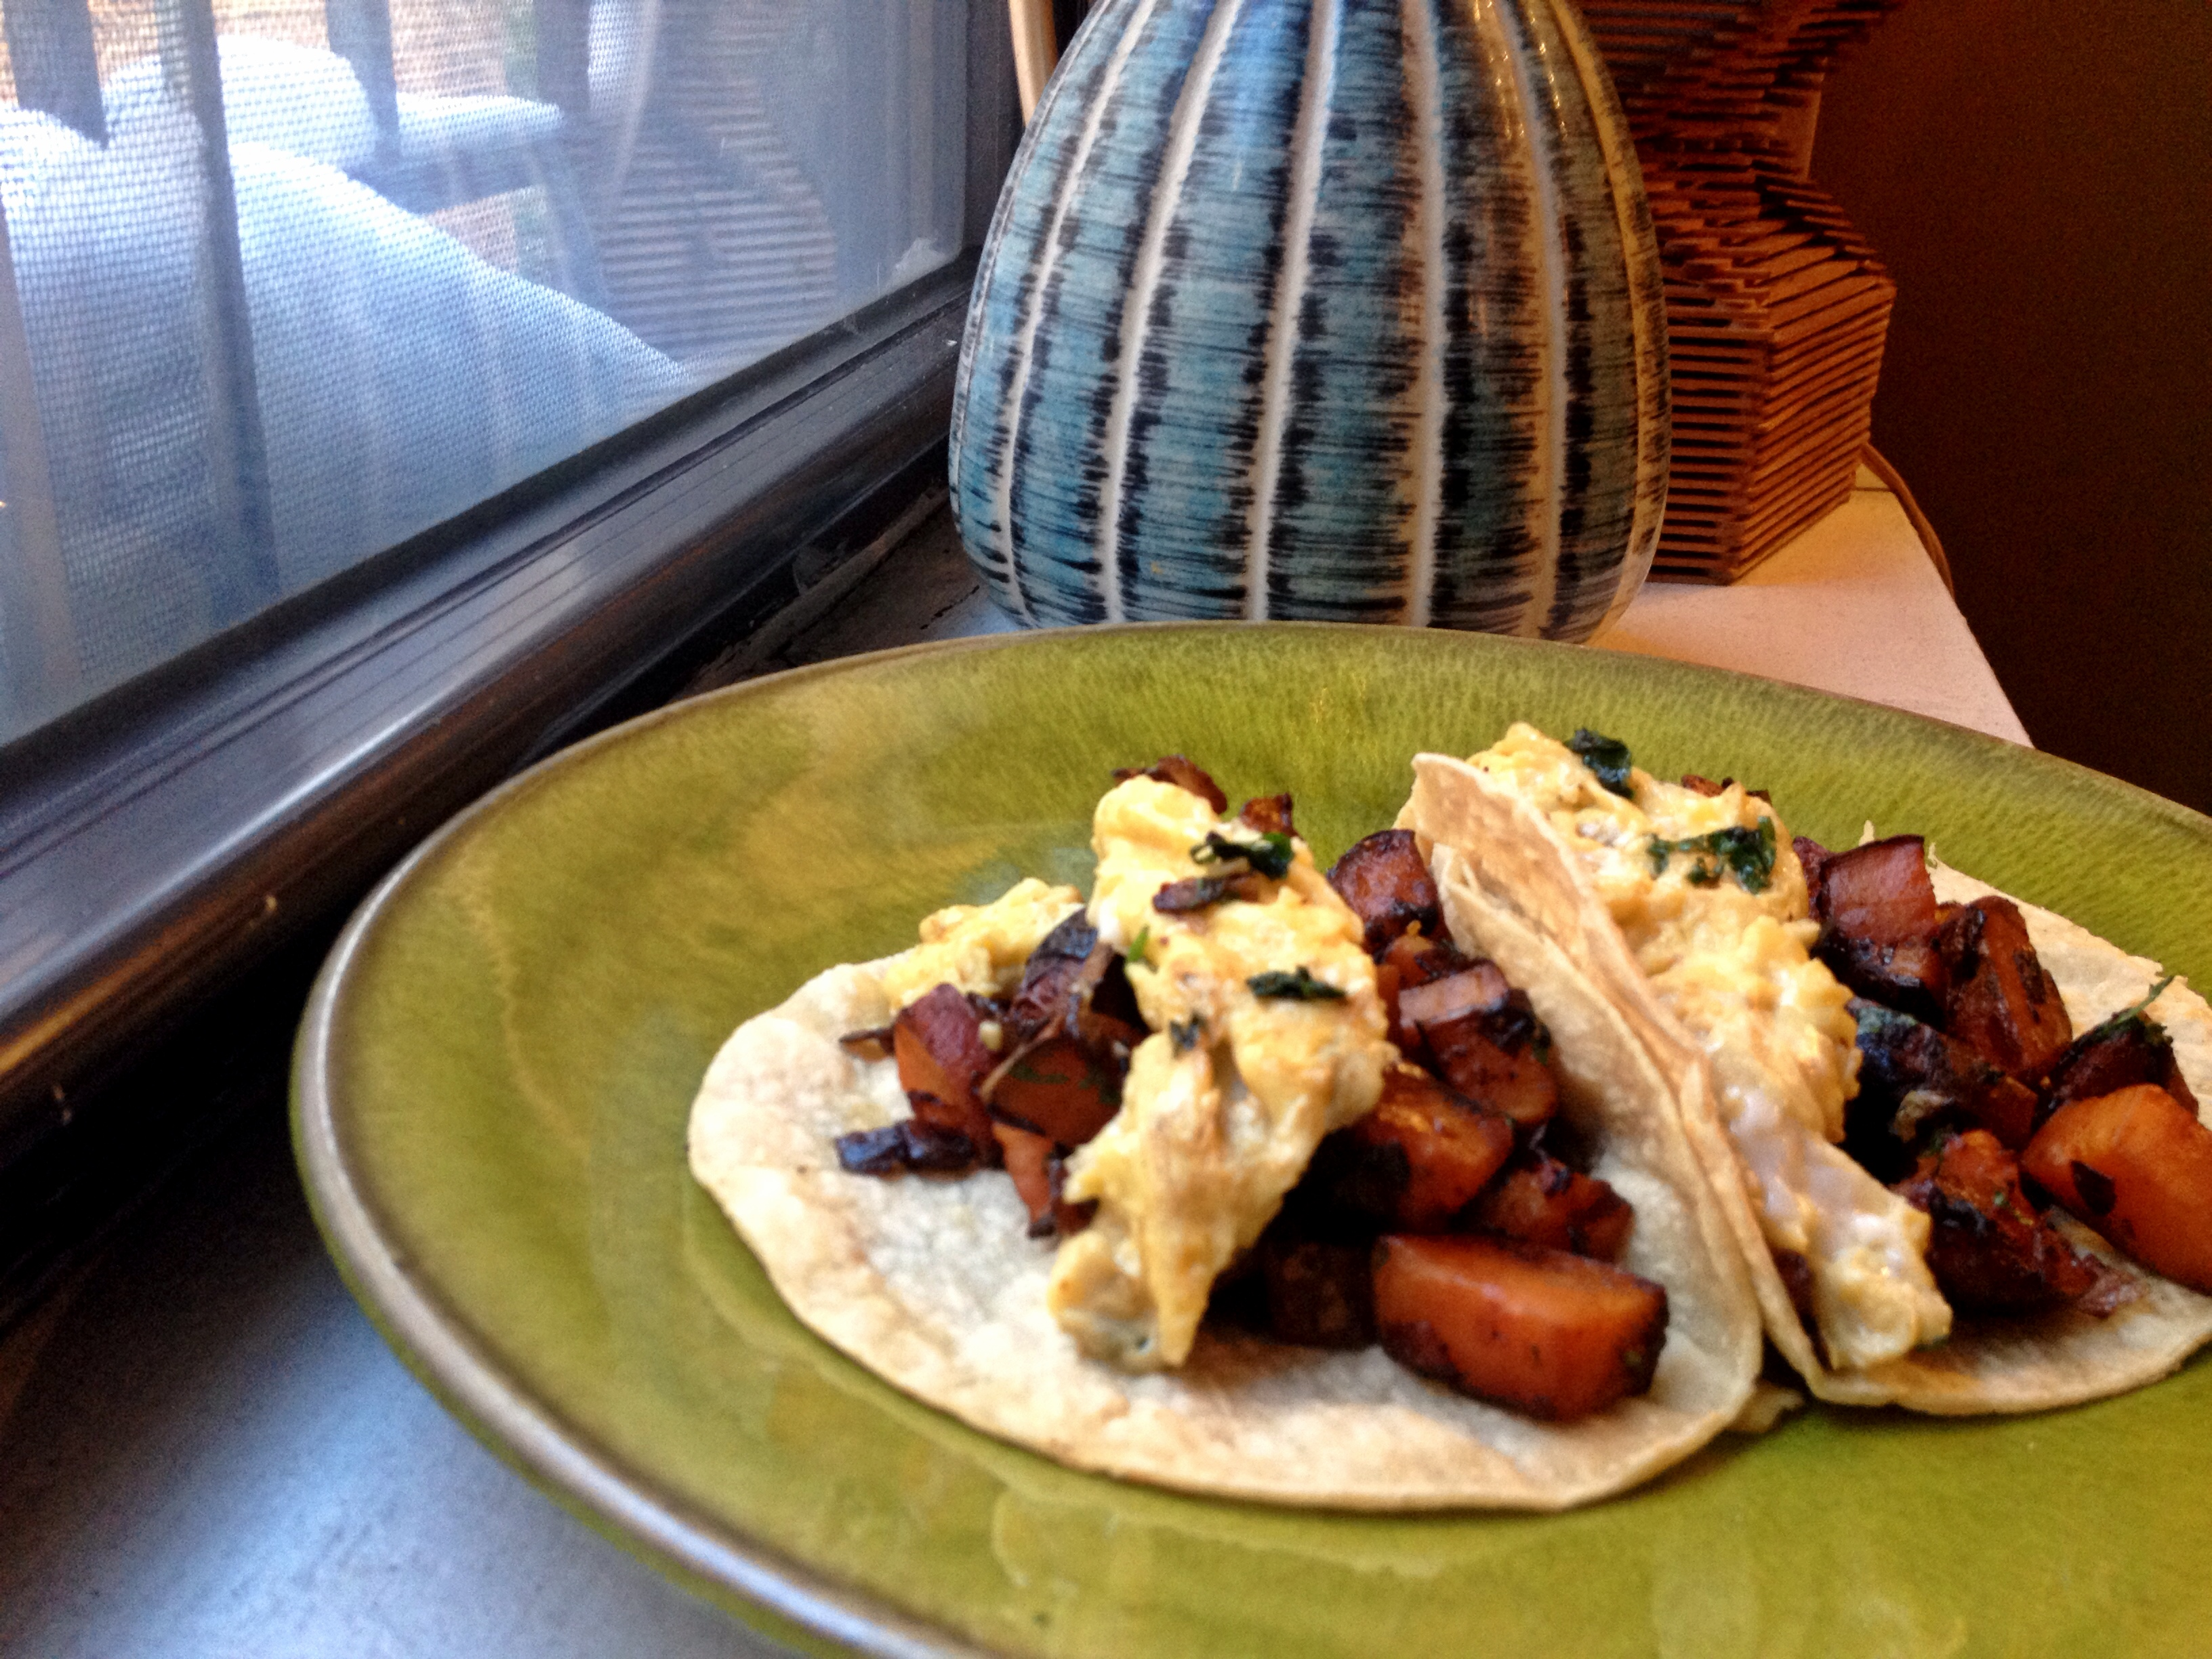 EAT THIS: Chipotle Sweet Potato Breakfast Tacos